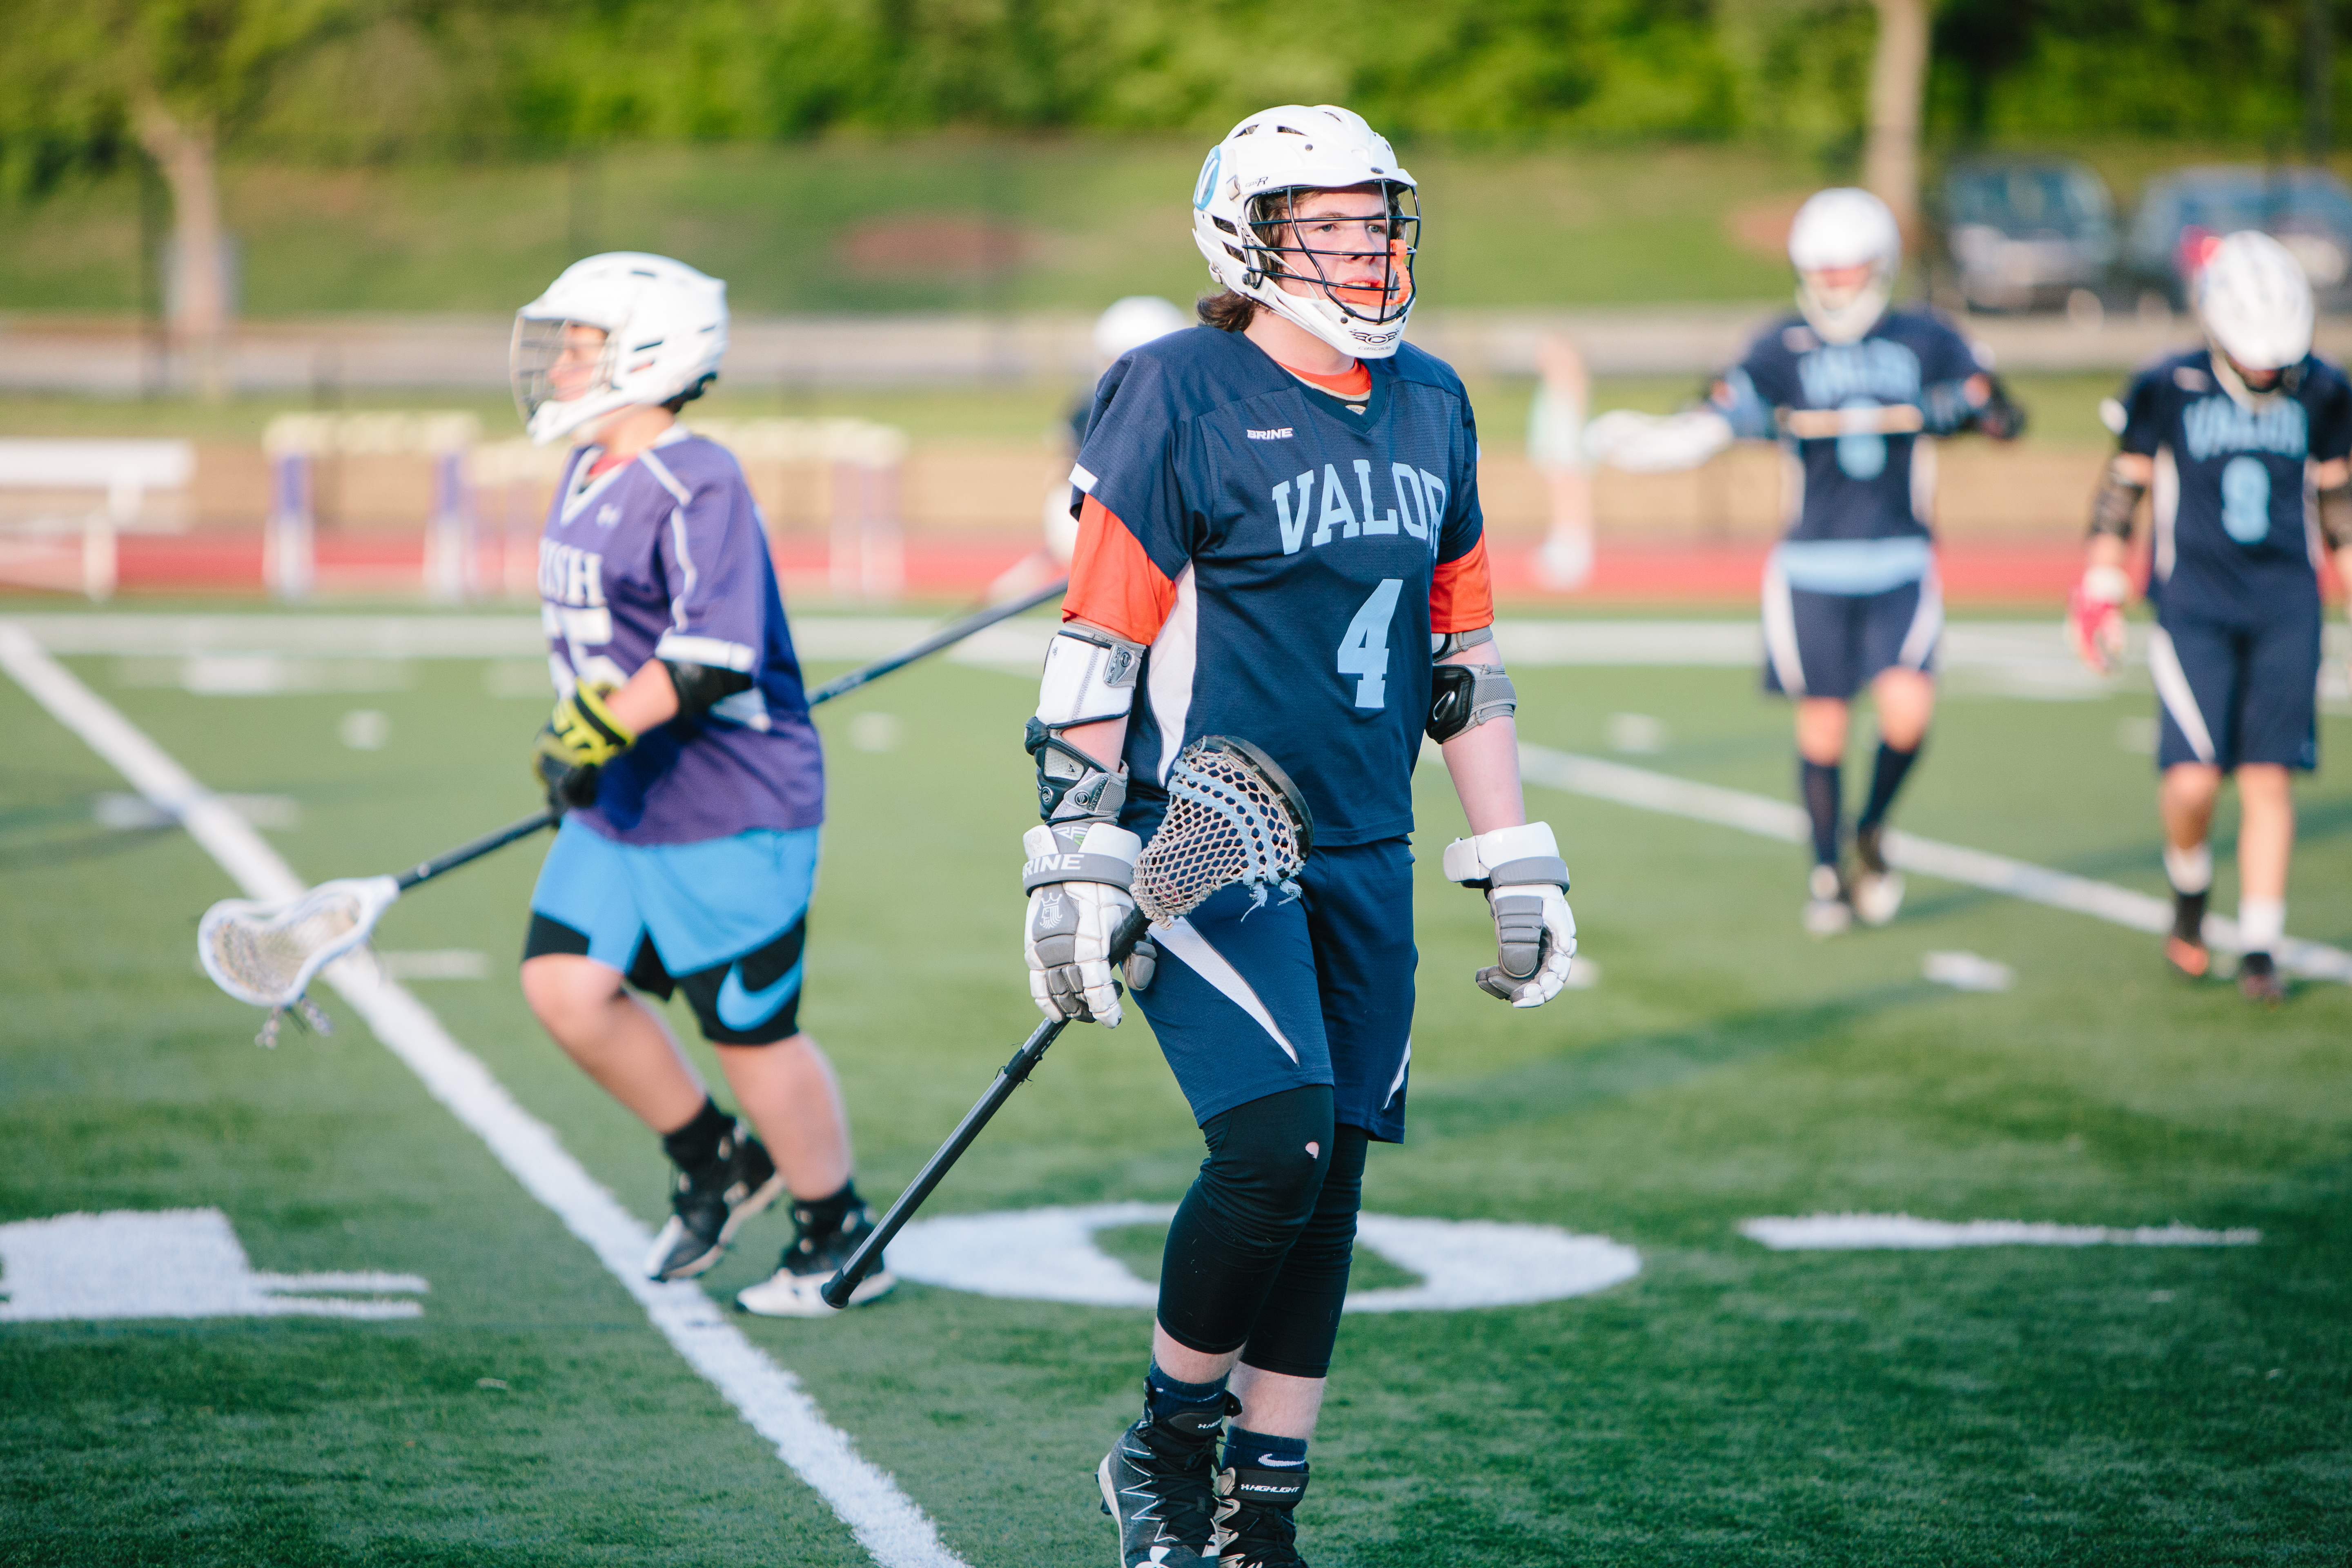 Dialed In: Your Lacrosse fix is Coming